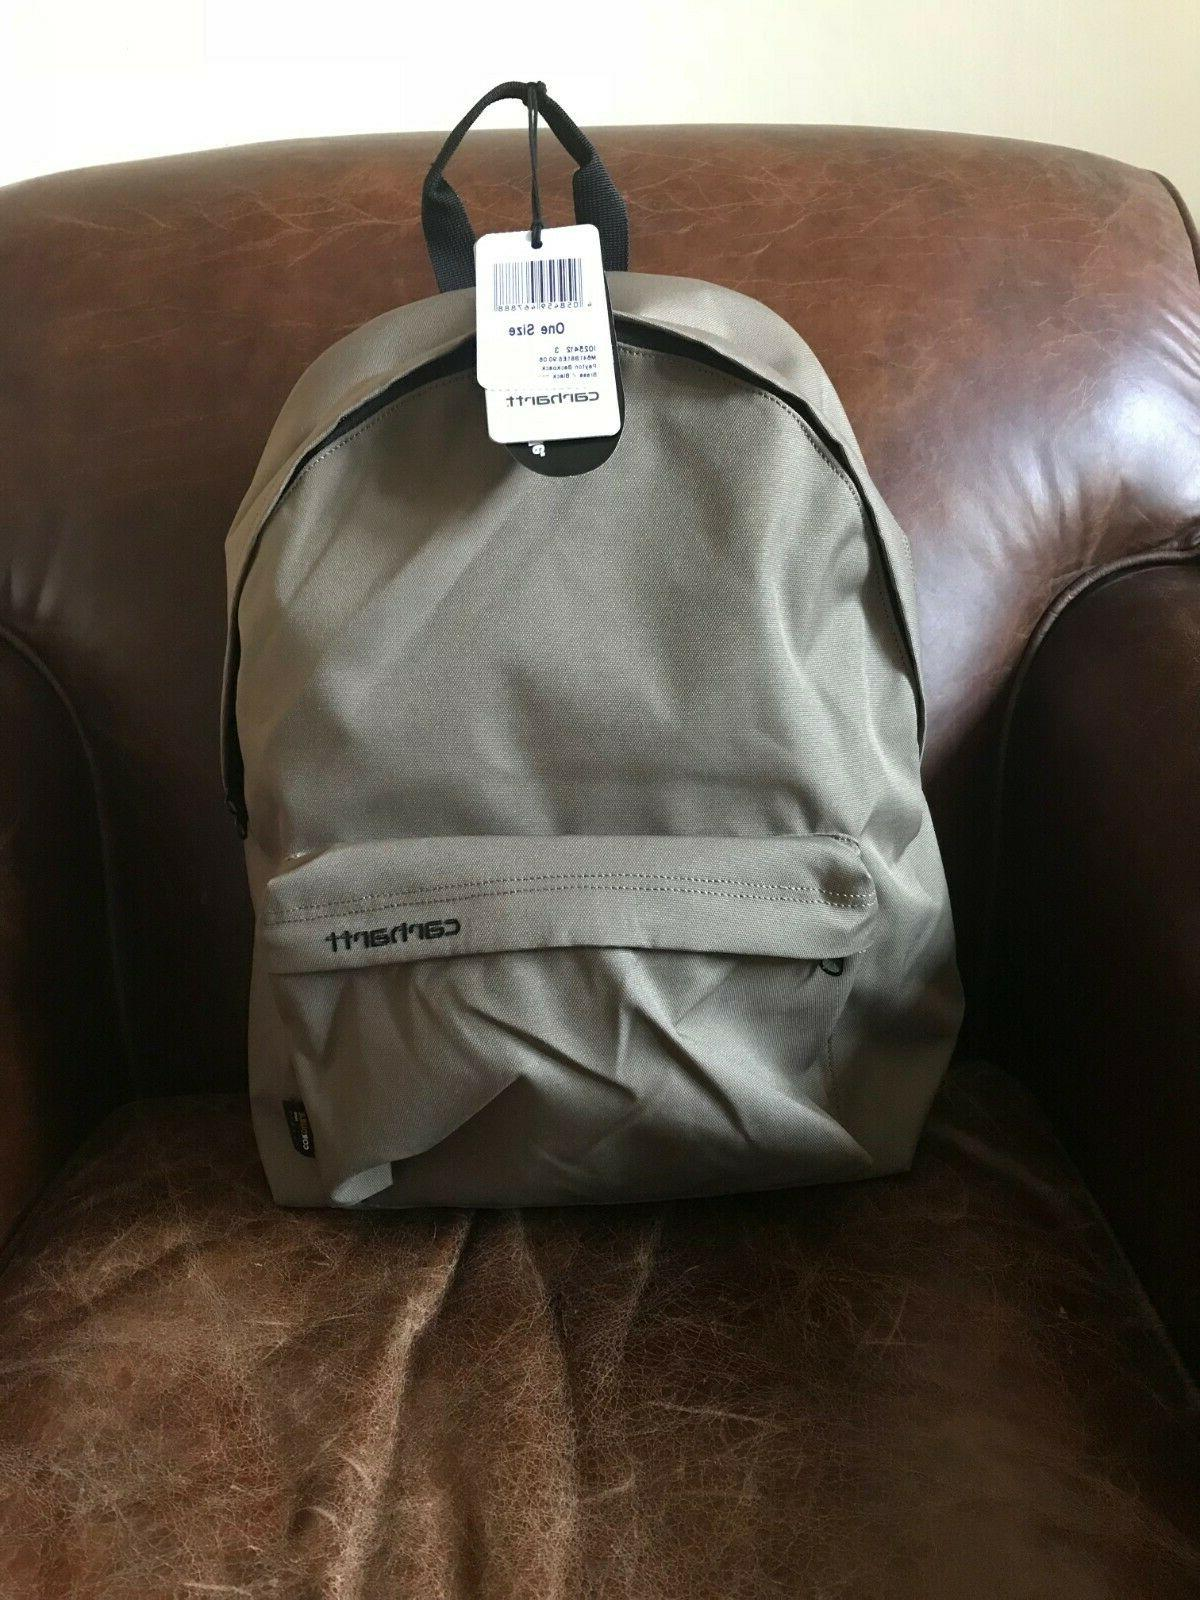 CARHARTT PAYTON BACKPACK, CORDURA FABRIC, BRASS COLOR, BRAND